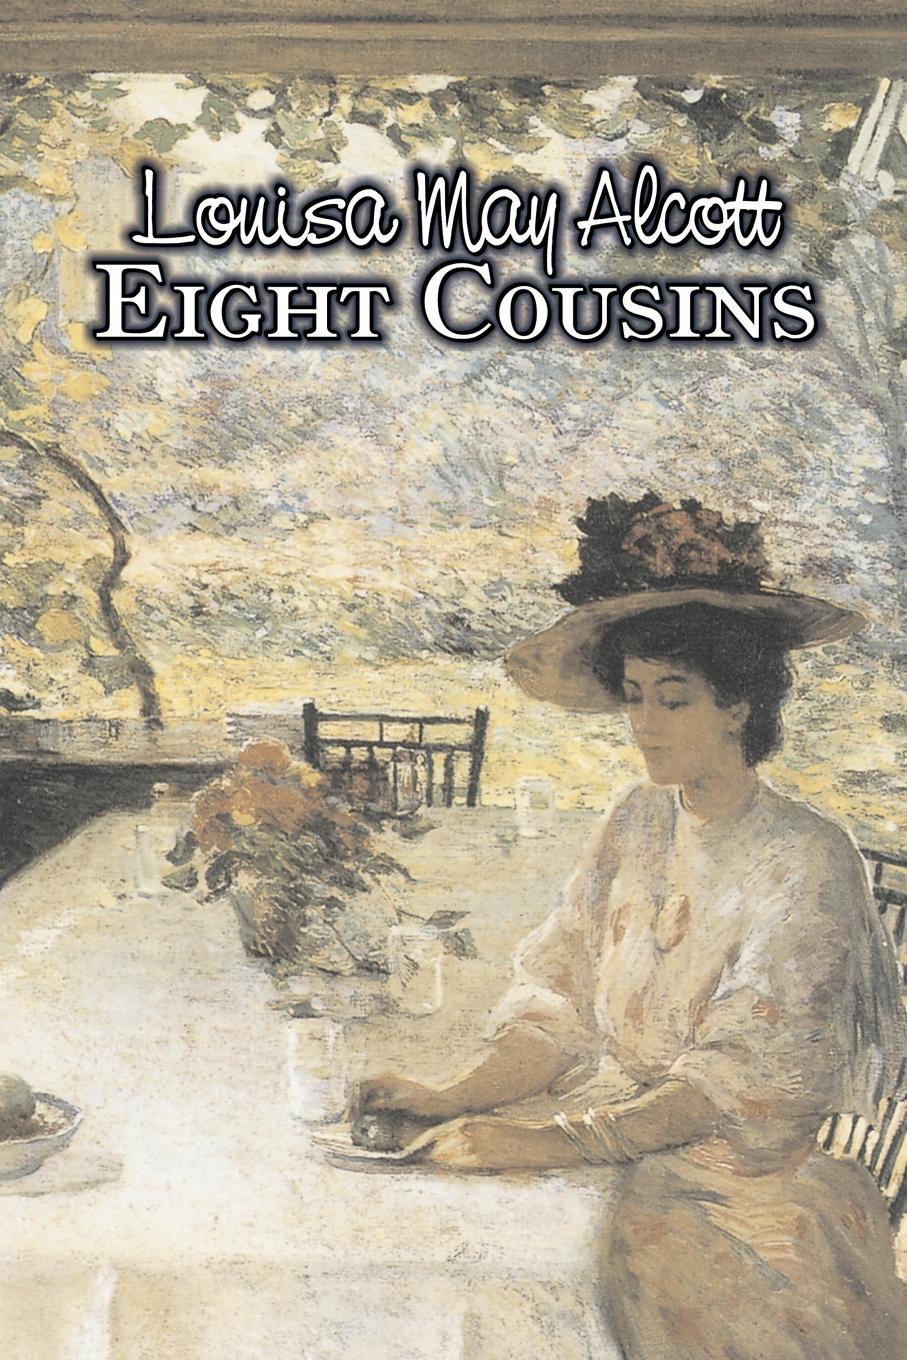 Louisa May Alcott Eight Cousins by Louisa May Alcott, Fiction, Family, Classics alcott l eight cousins or the aunt hill